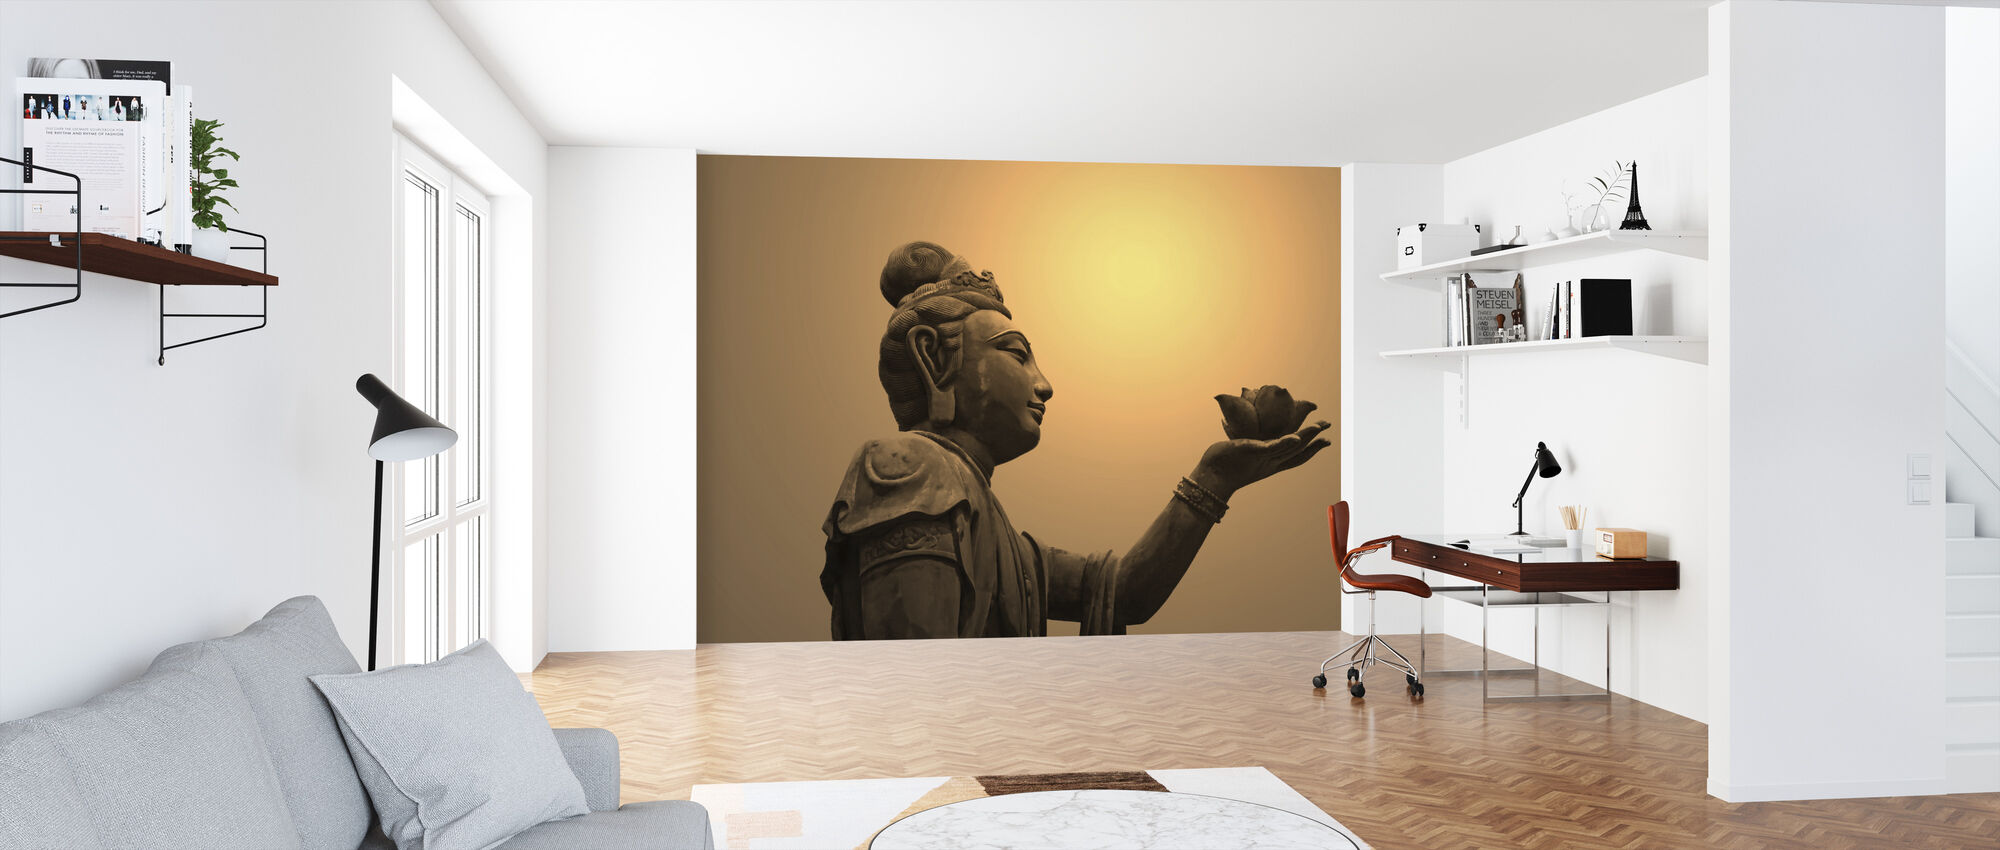 Buddhist Statue, Hong Kong - Wallpaper - Office